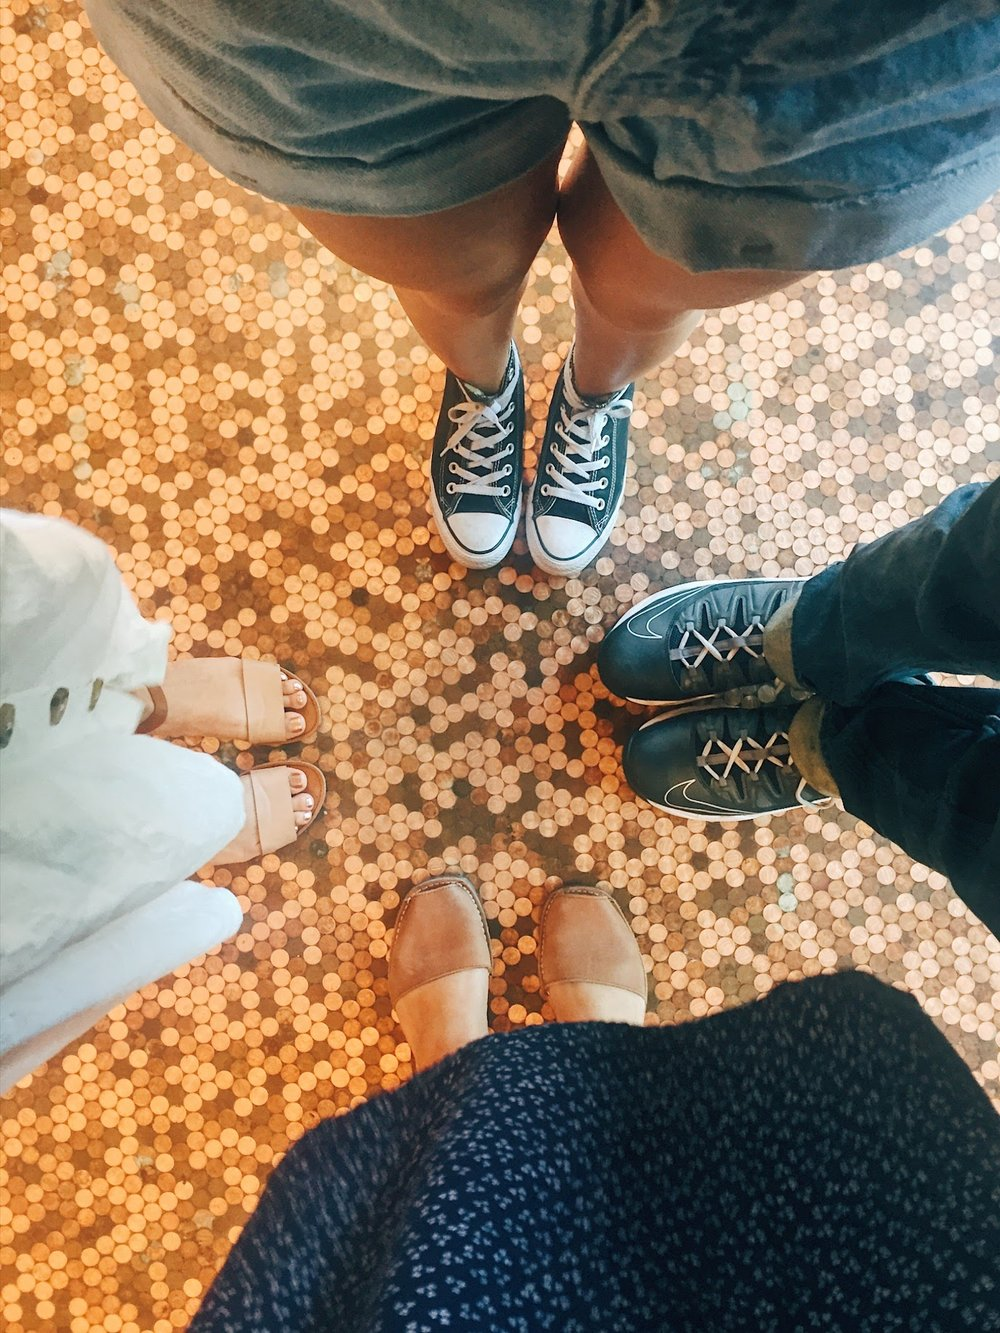 i had to show my cousins the penny floor at temple coffee. it was their first time really hanging out in sacramento and i think htey were impressed